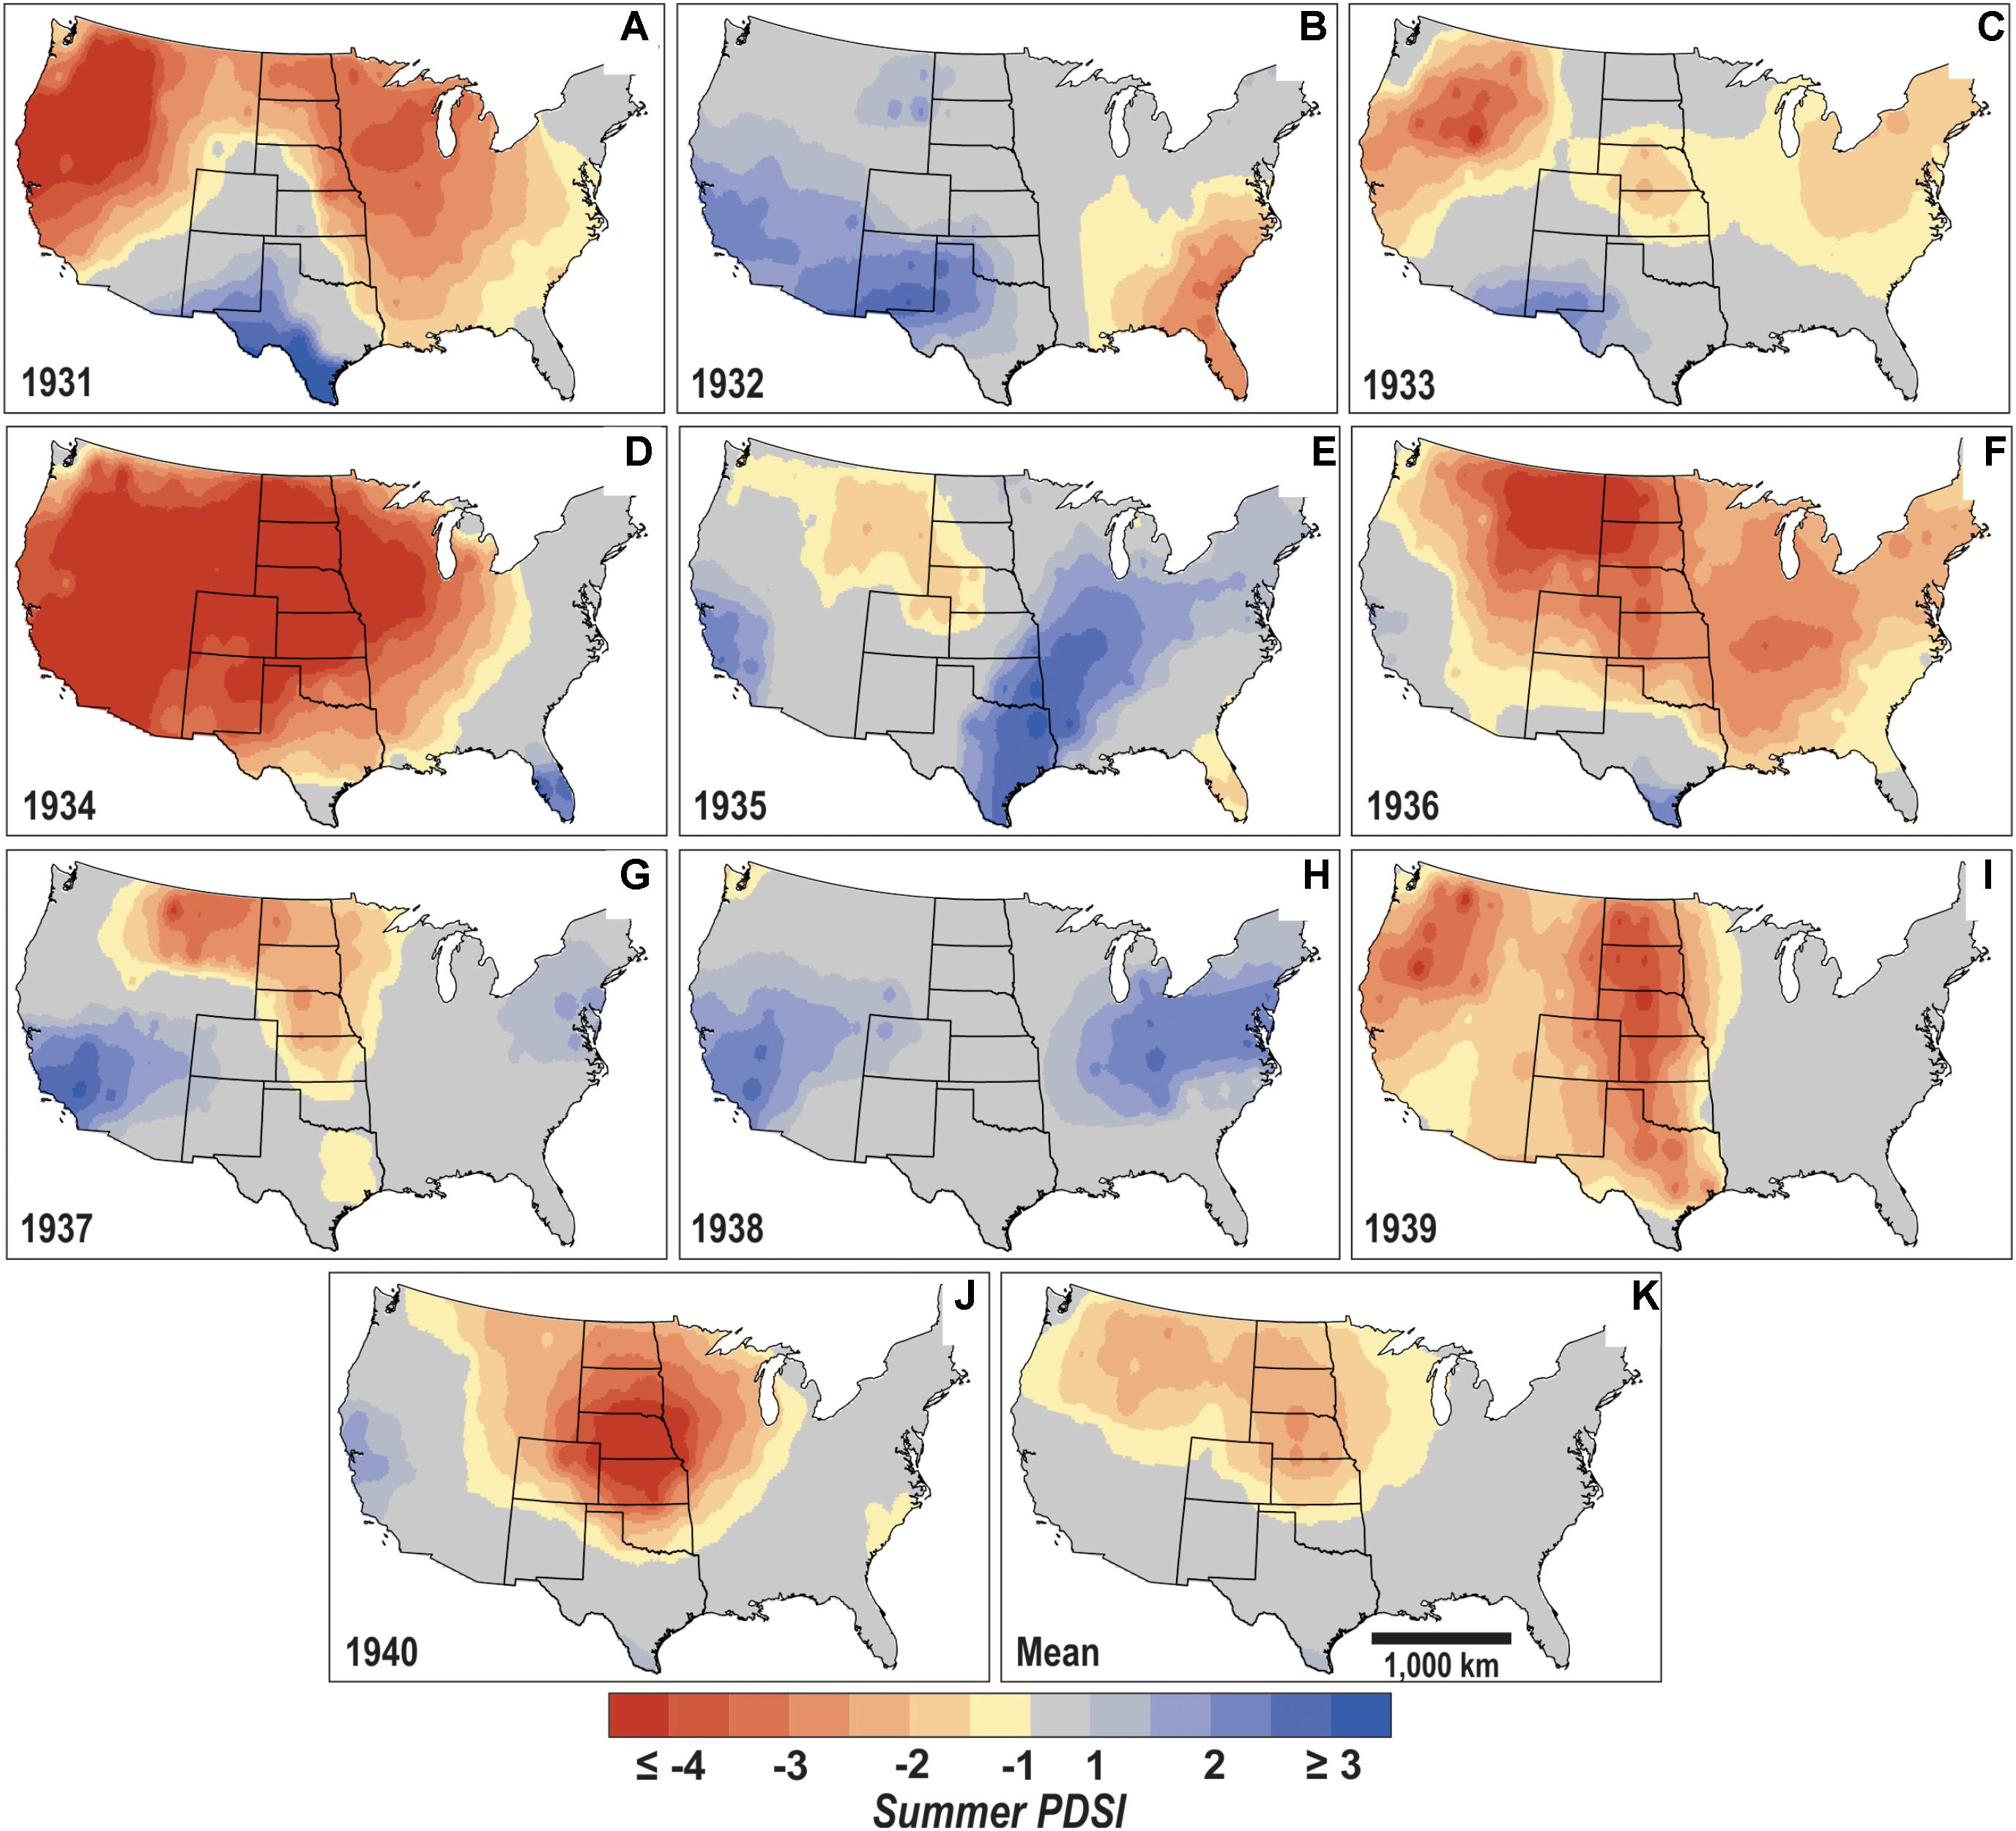 Frontiers | Evaluating Landscape Degradation Along Climatic